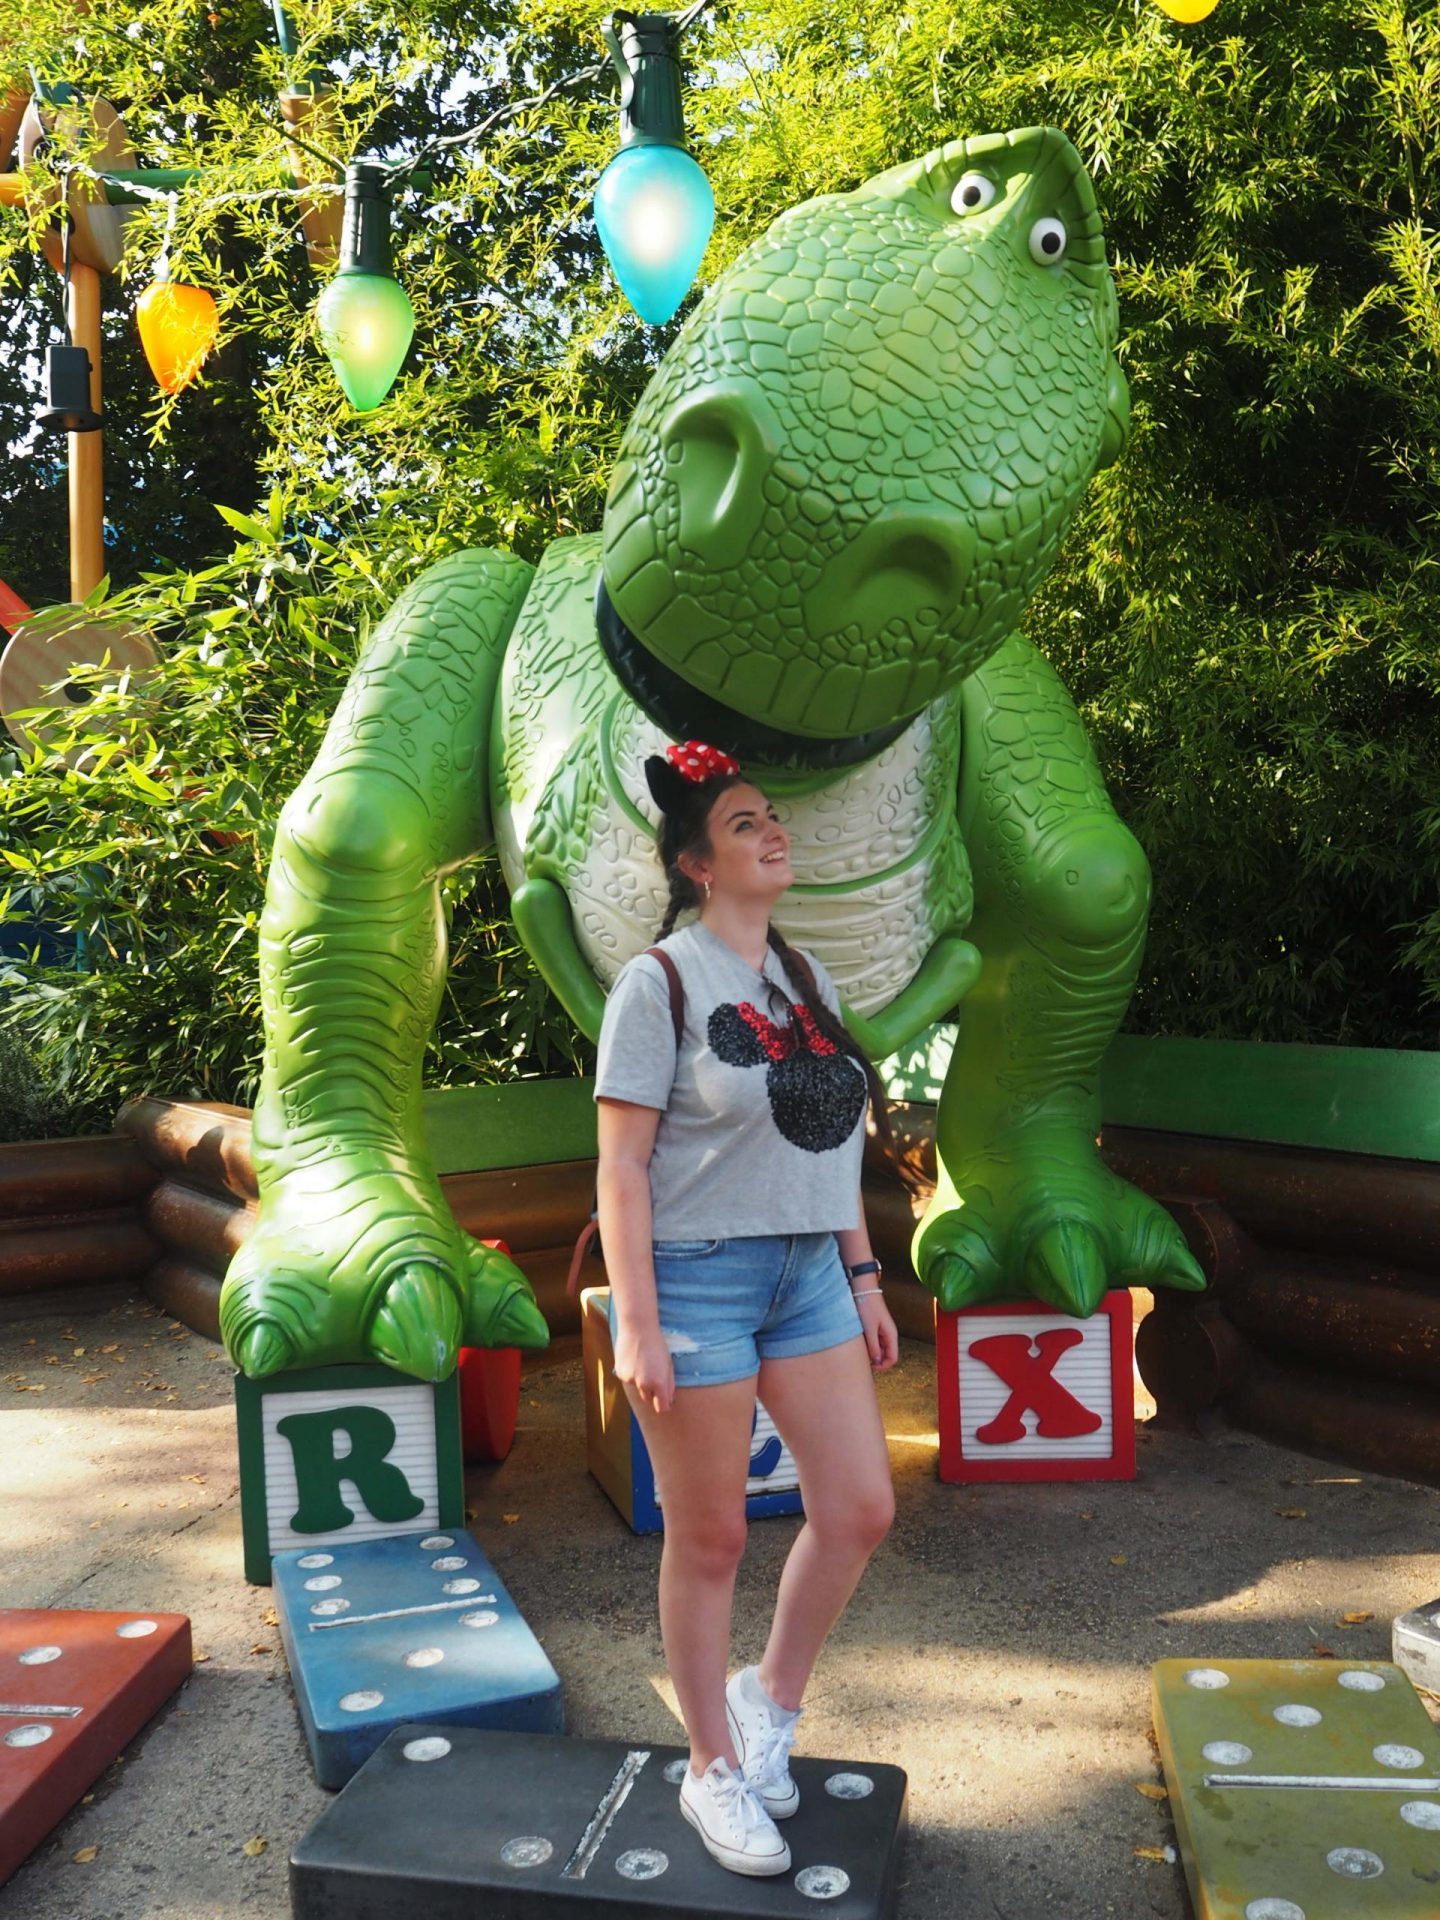 disneyland-paris-my-22nd-birthday-trip-rachel-nicole-uk-travel-disney-blogger-24